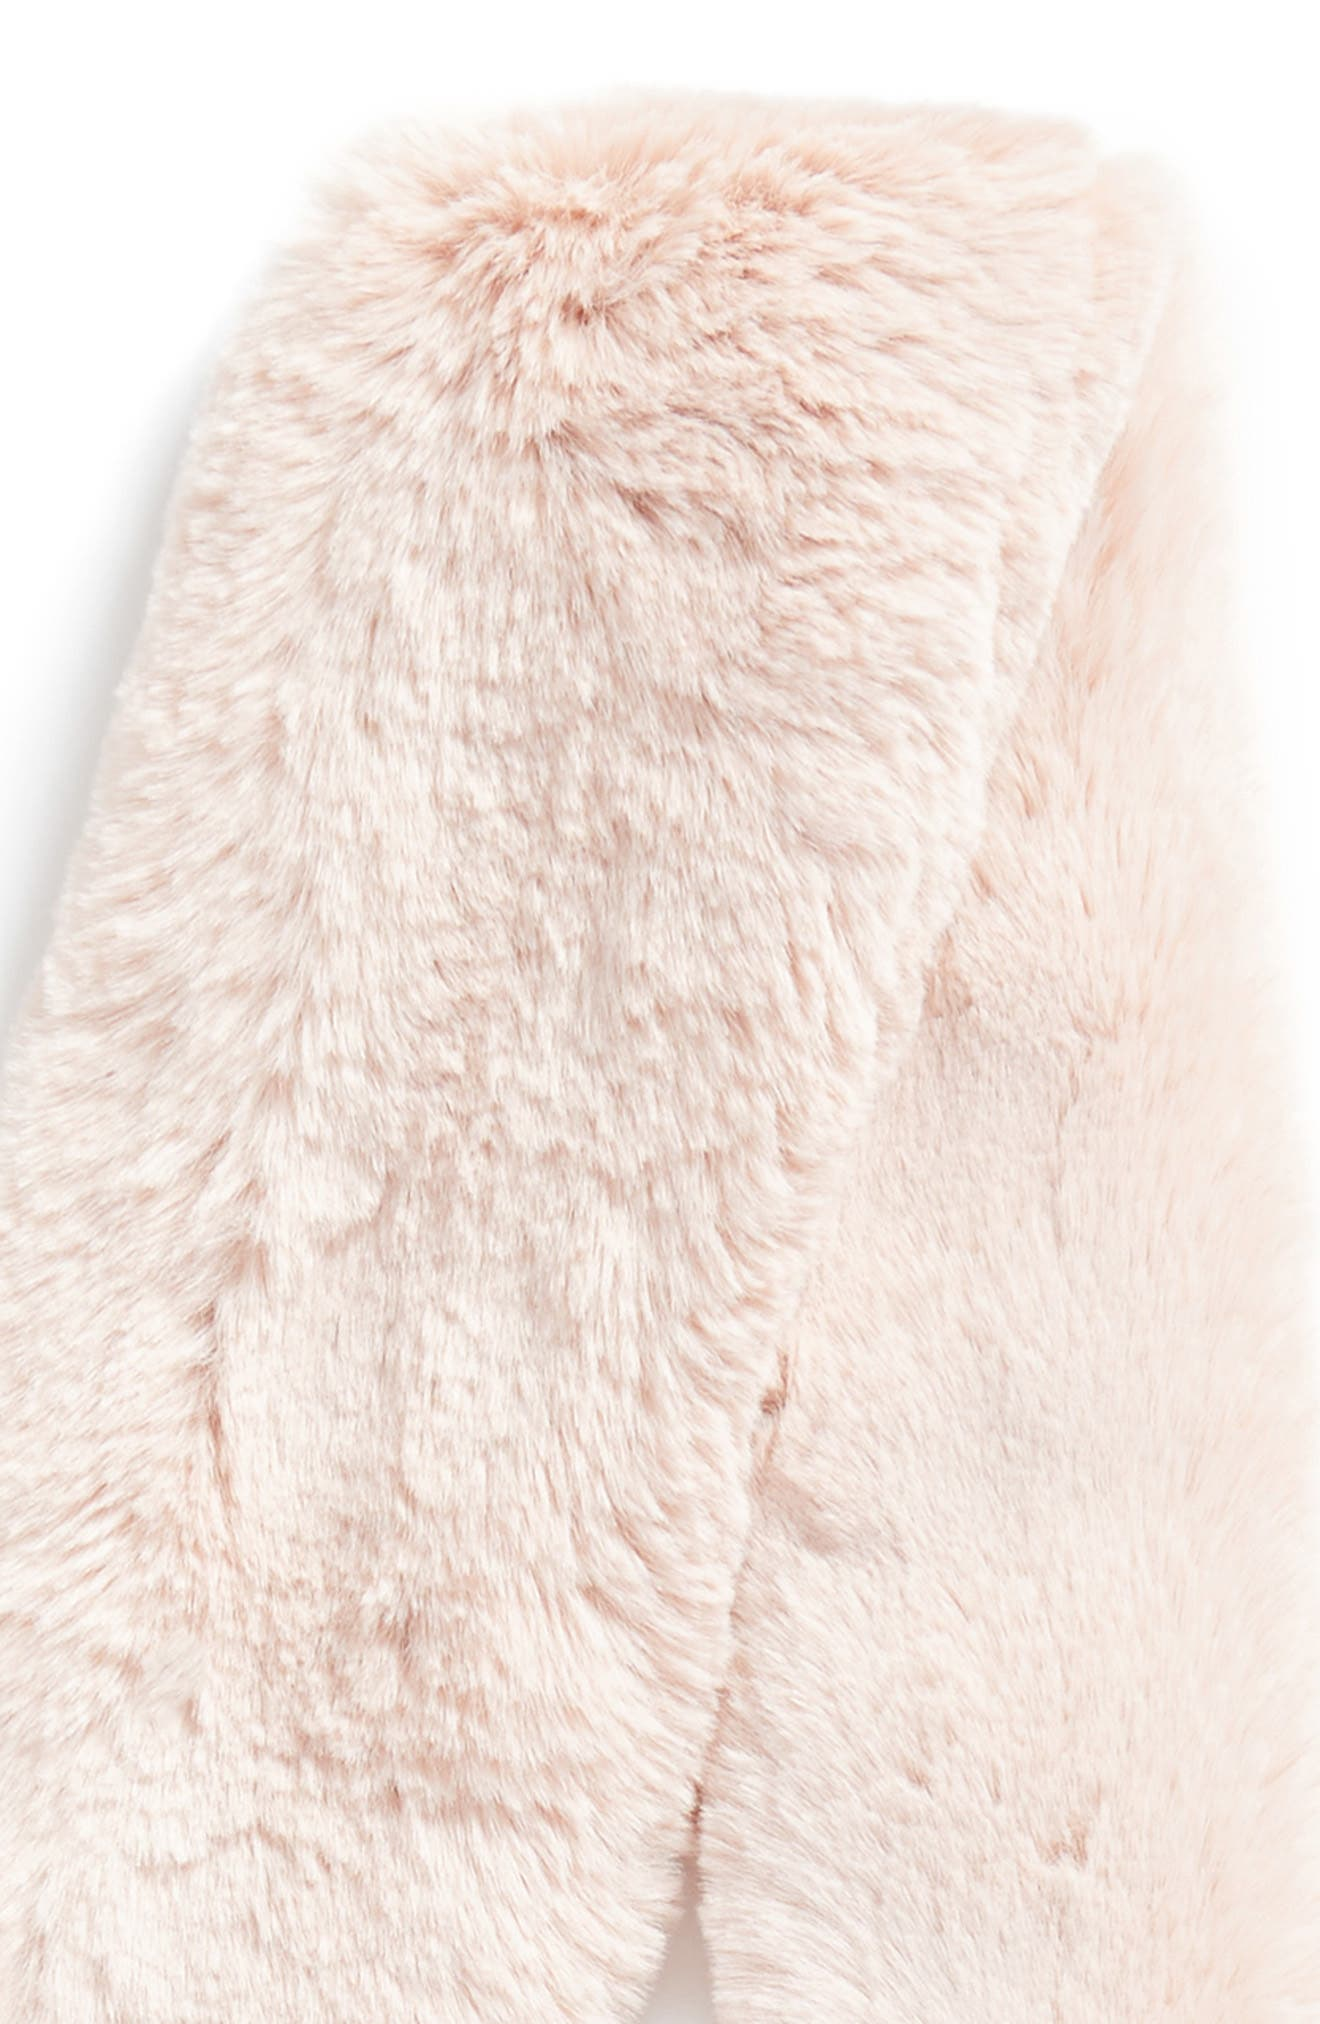 Pompom Faux Fur Scarf,                             Alternate thumbnail 4, color,                             Light Pink